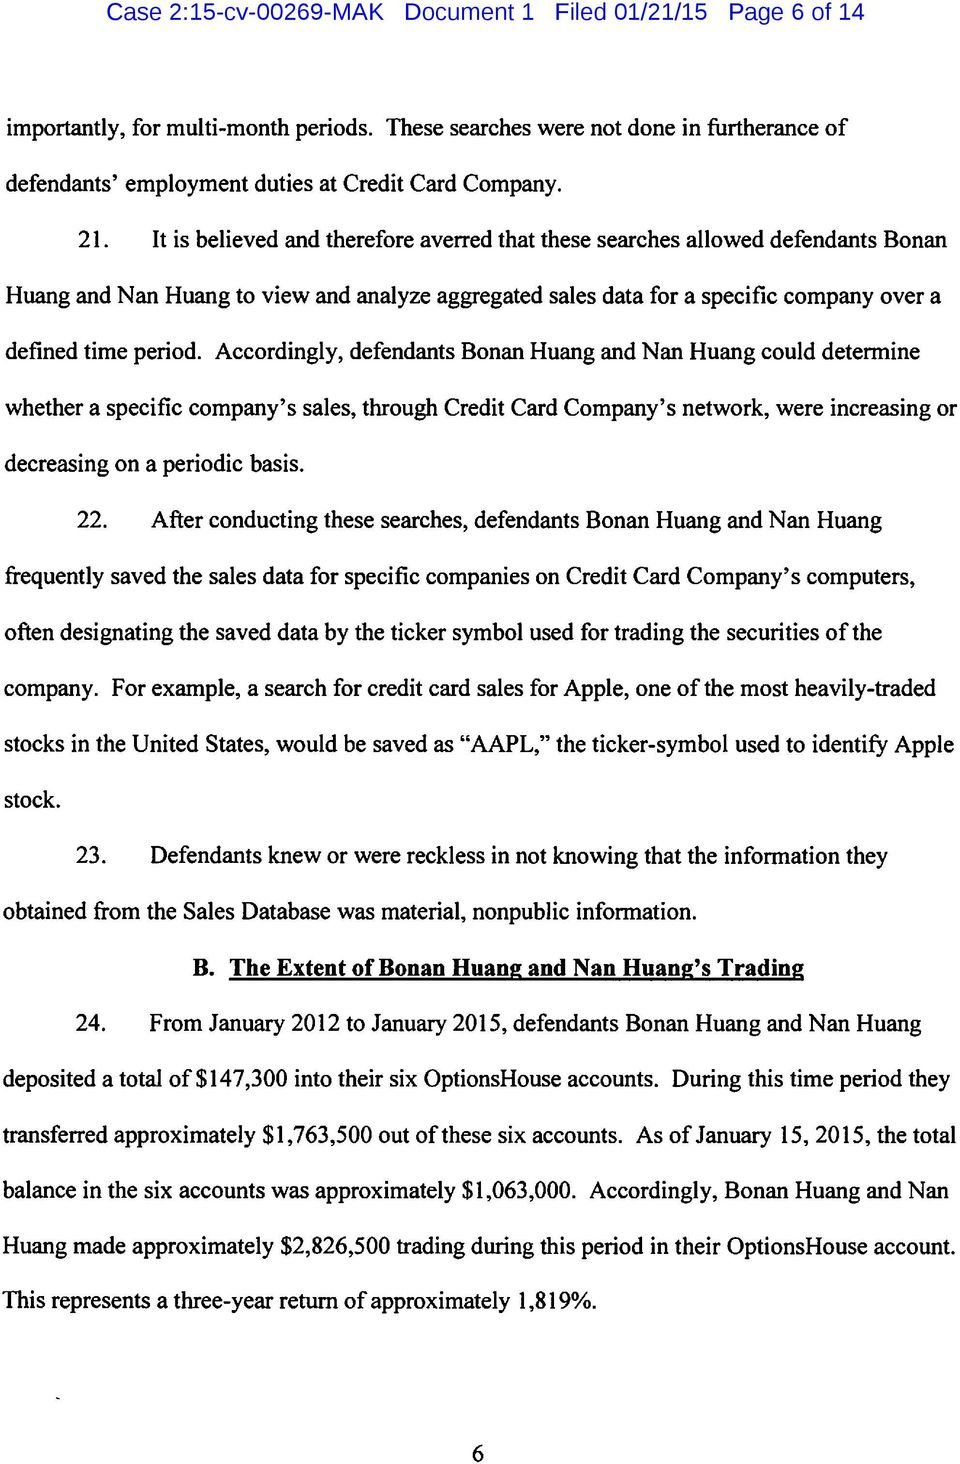 Accordingly, defendants Bonan Huang and Nan Huang could determine whether a specific company's sales, through Credit Card Company's network, were increasing or decreasing on a periodic basis. 22.